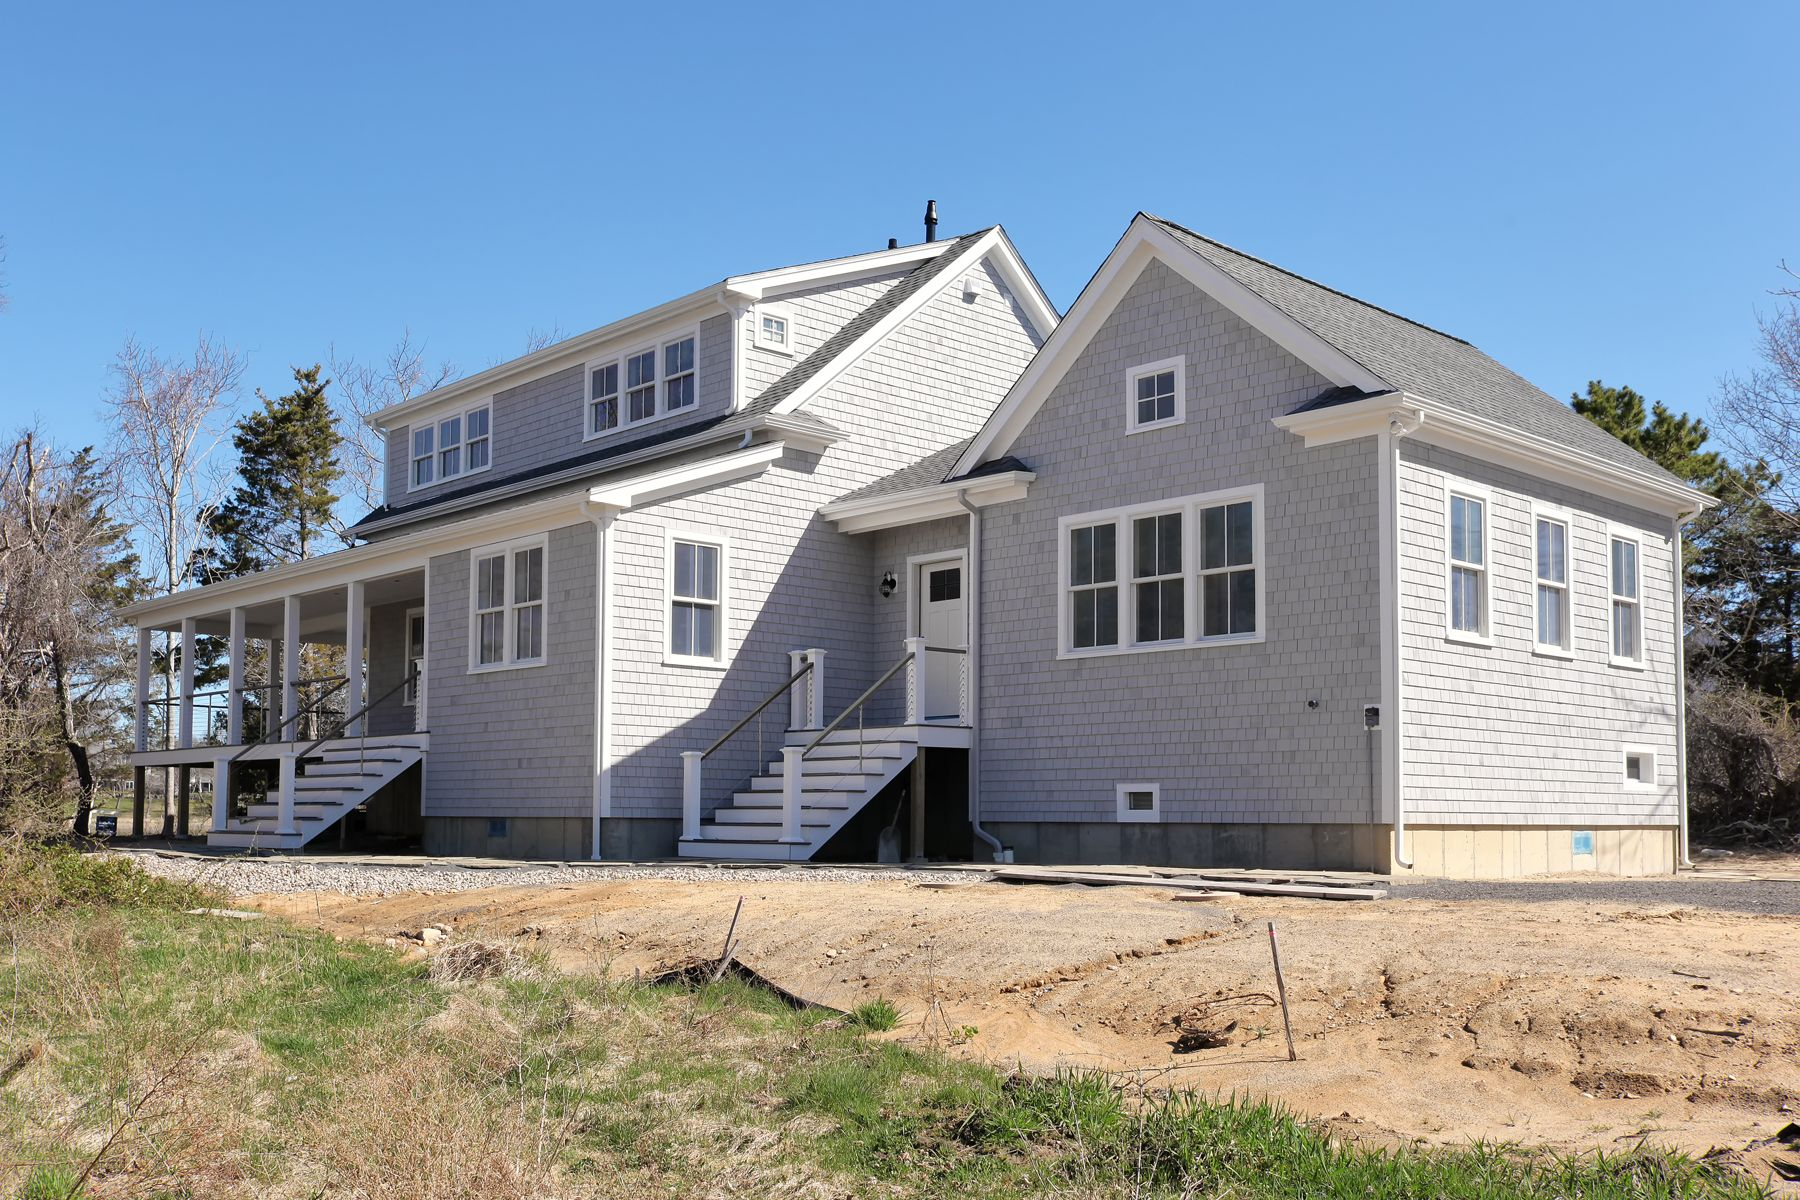 Single Family Home for Active at 22 State Street Sandwich, Massachusetts 02563 United States